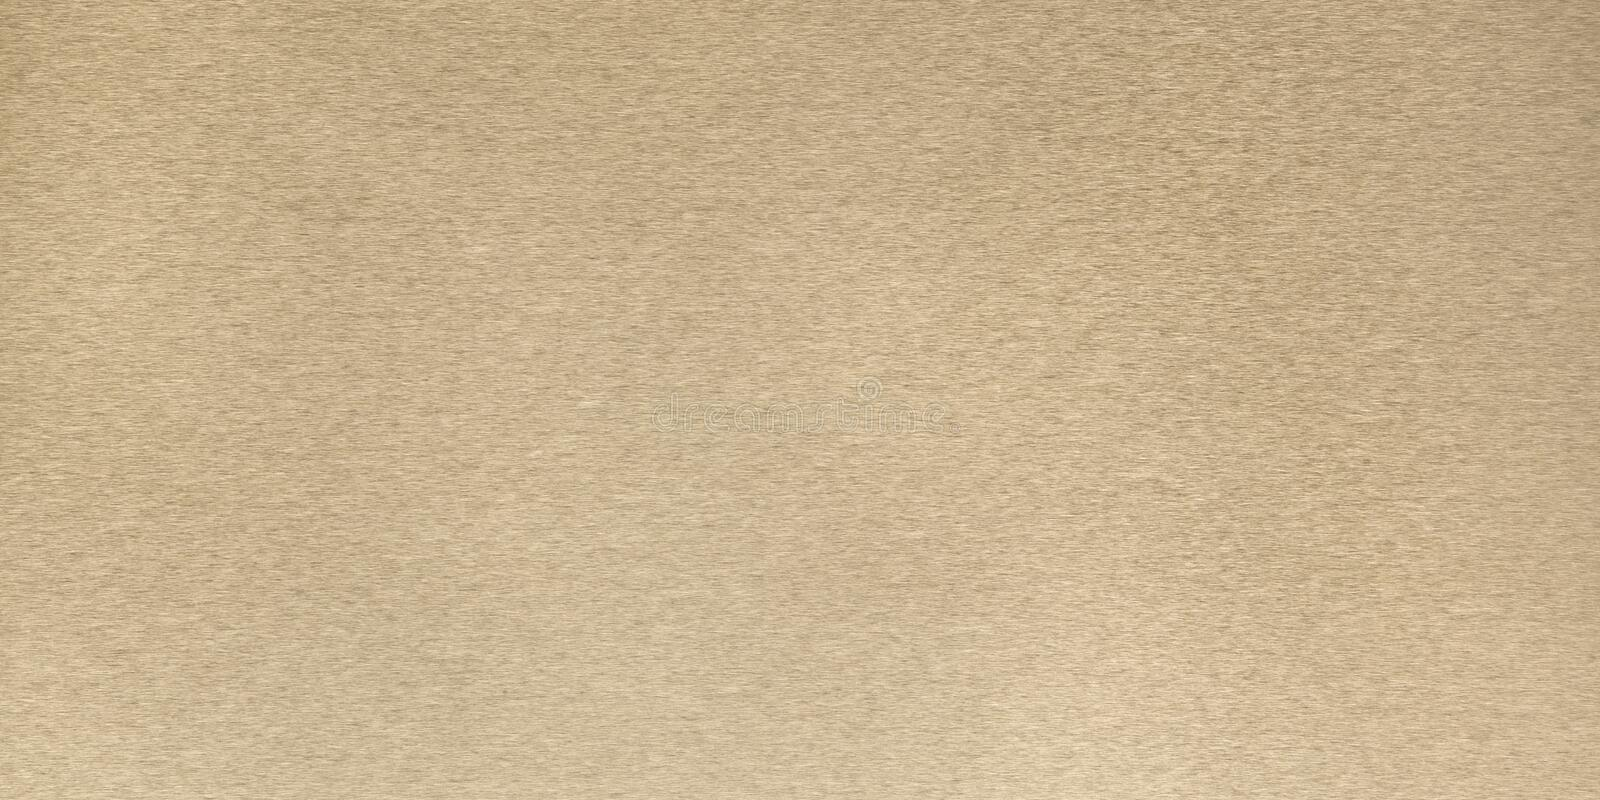 Seamless metallic texture and pattern for background template royalty free stock photos